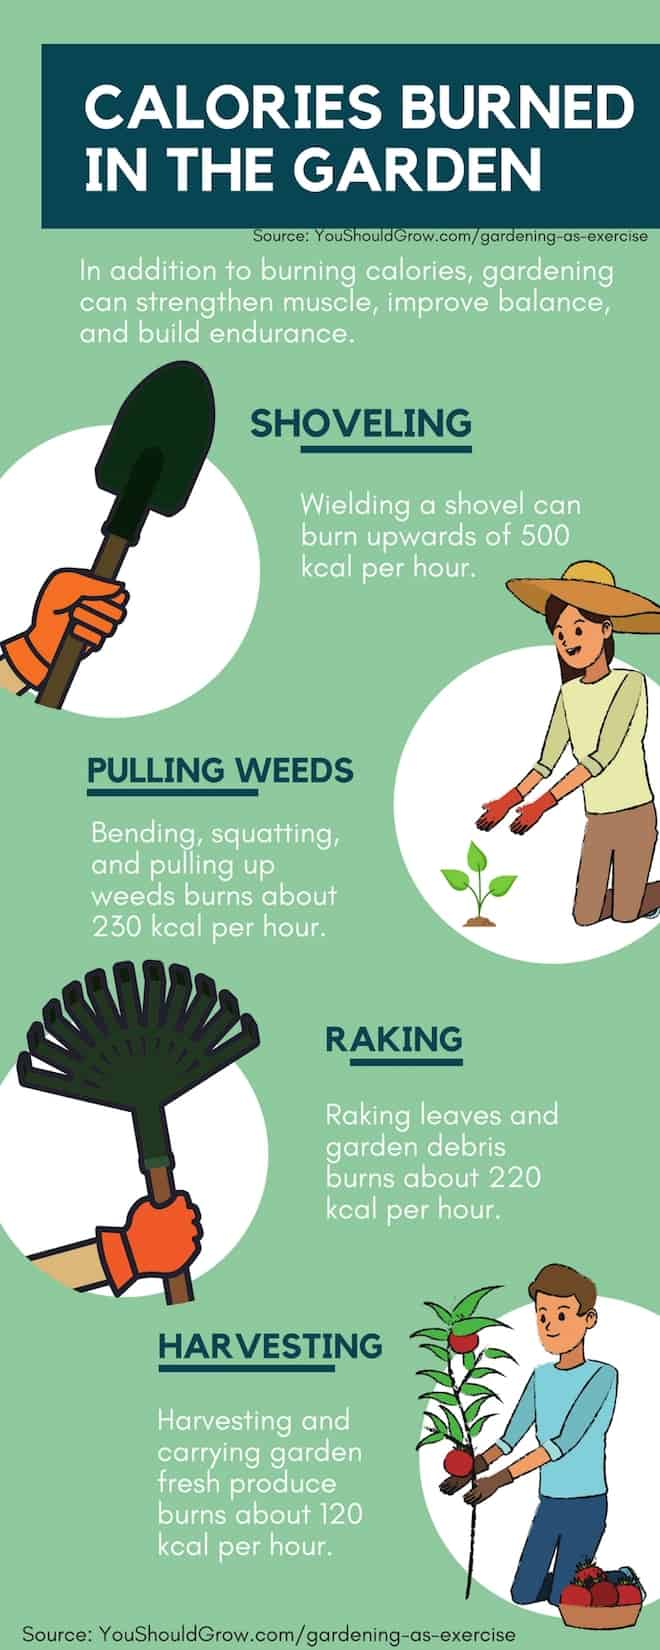 Gardening Tips: Calories burned when gardening as exercise.